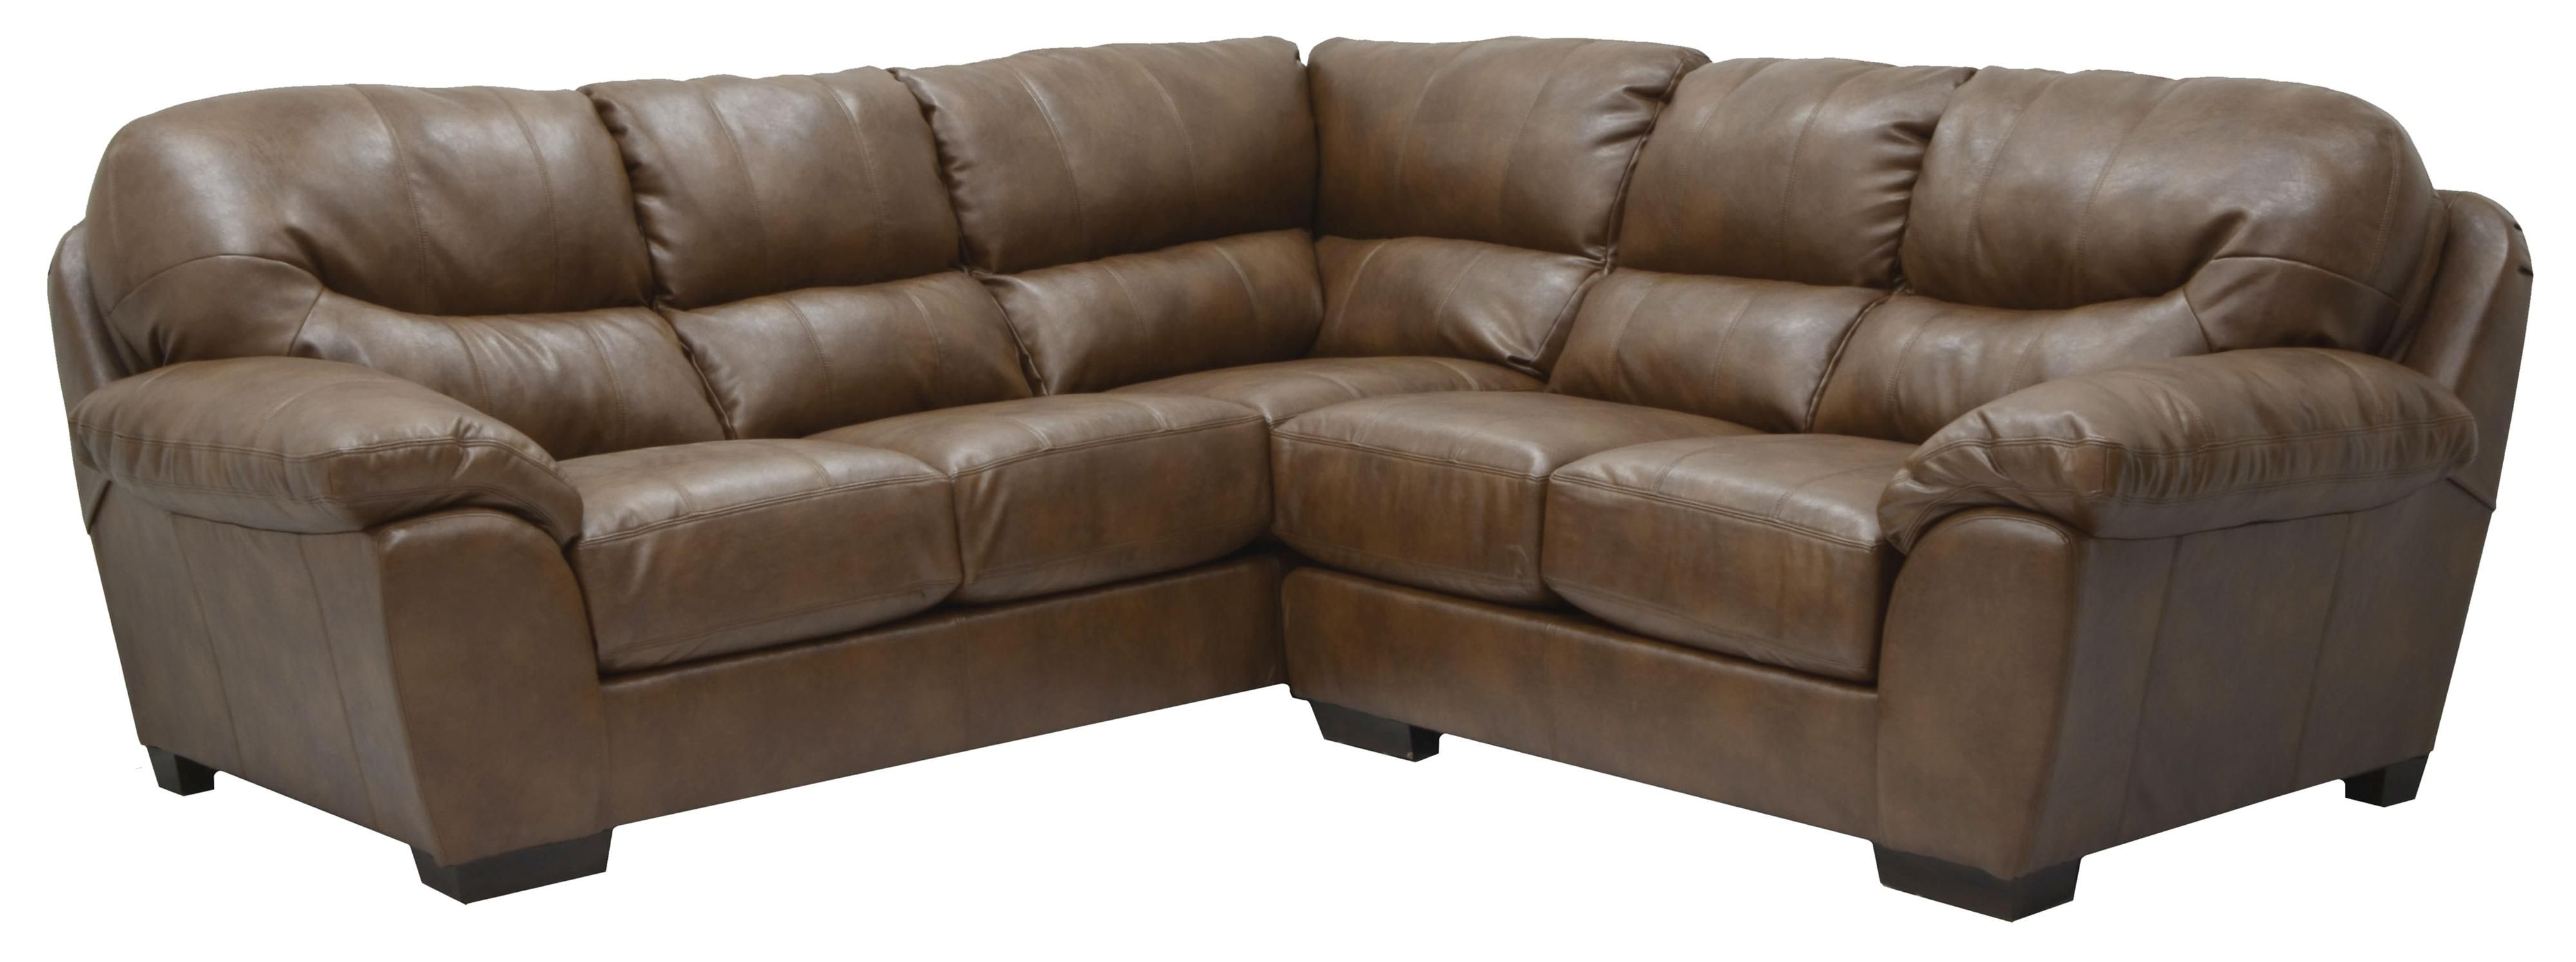 Save 50 On Sectionals During Our Ultimate Sofa Sale At